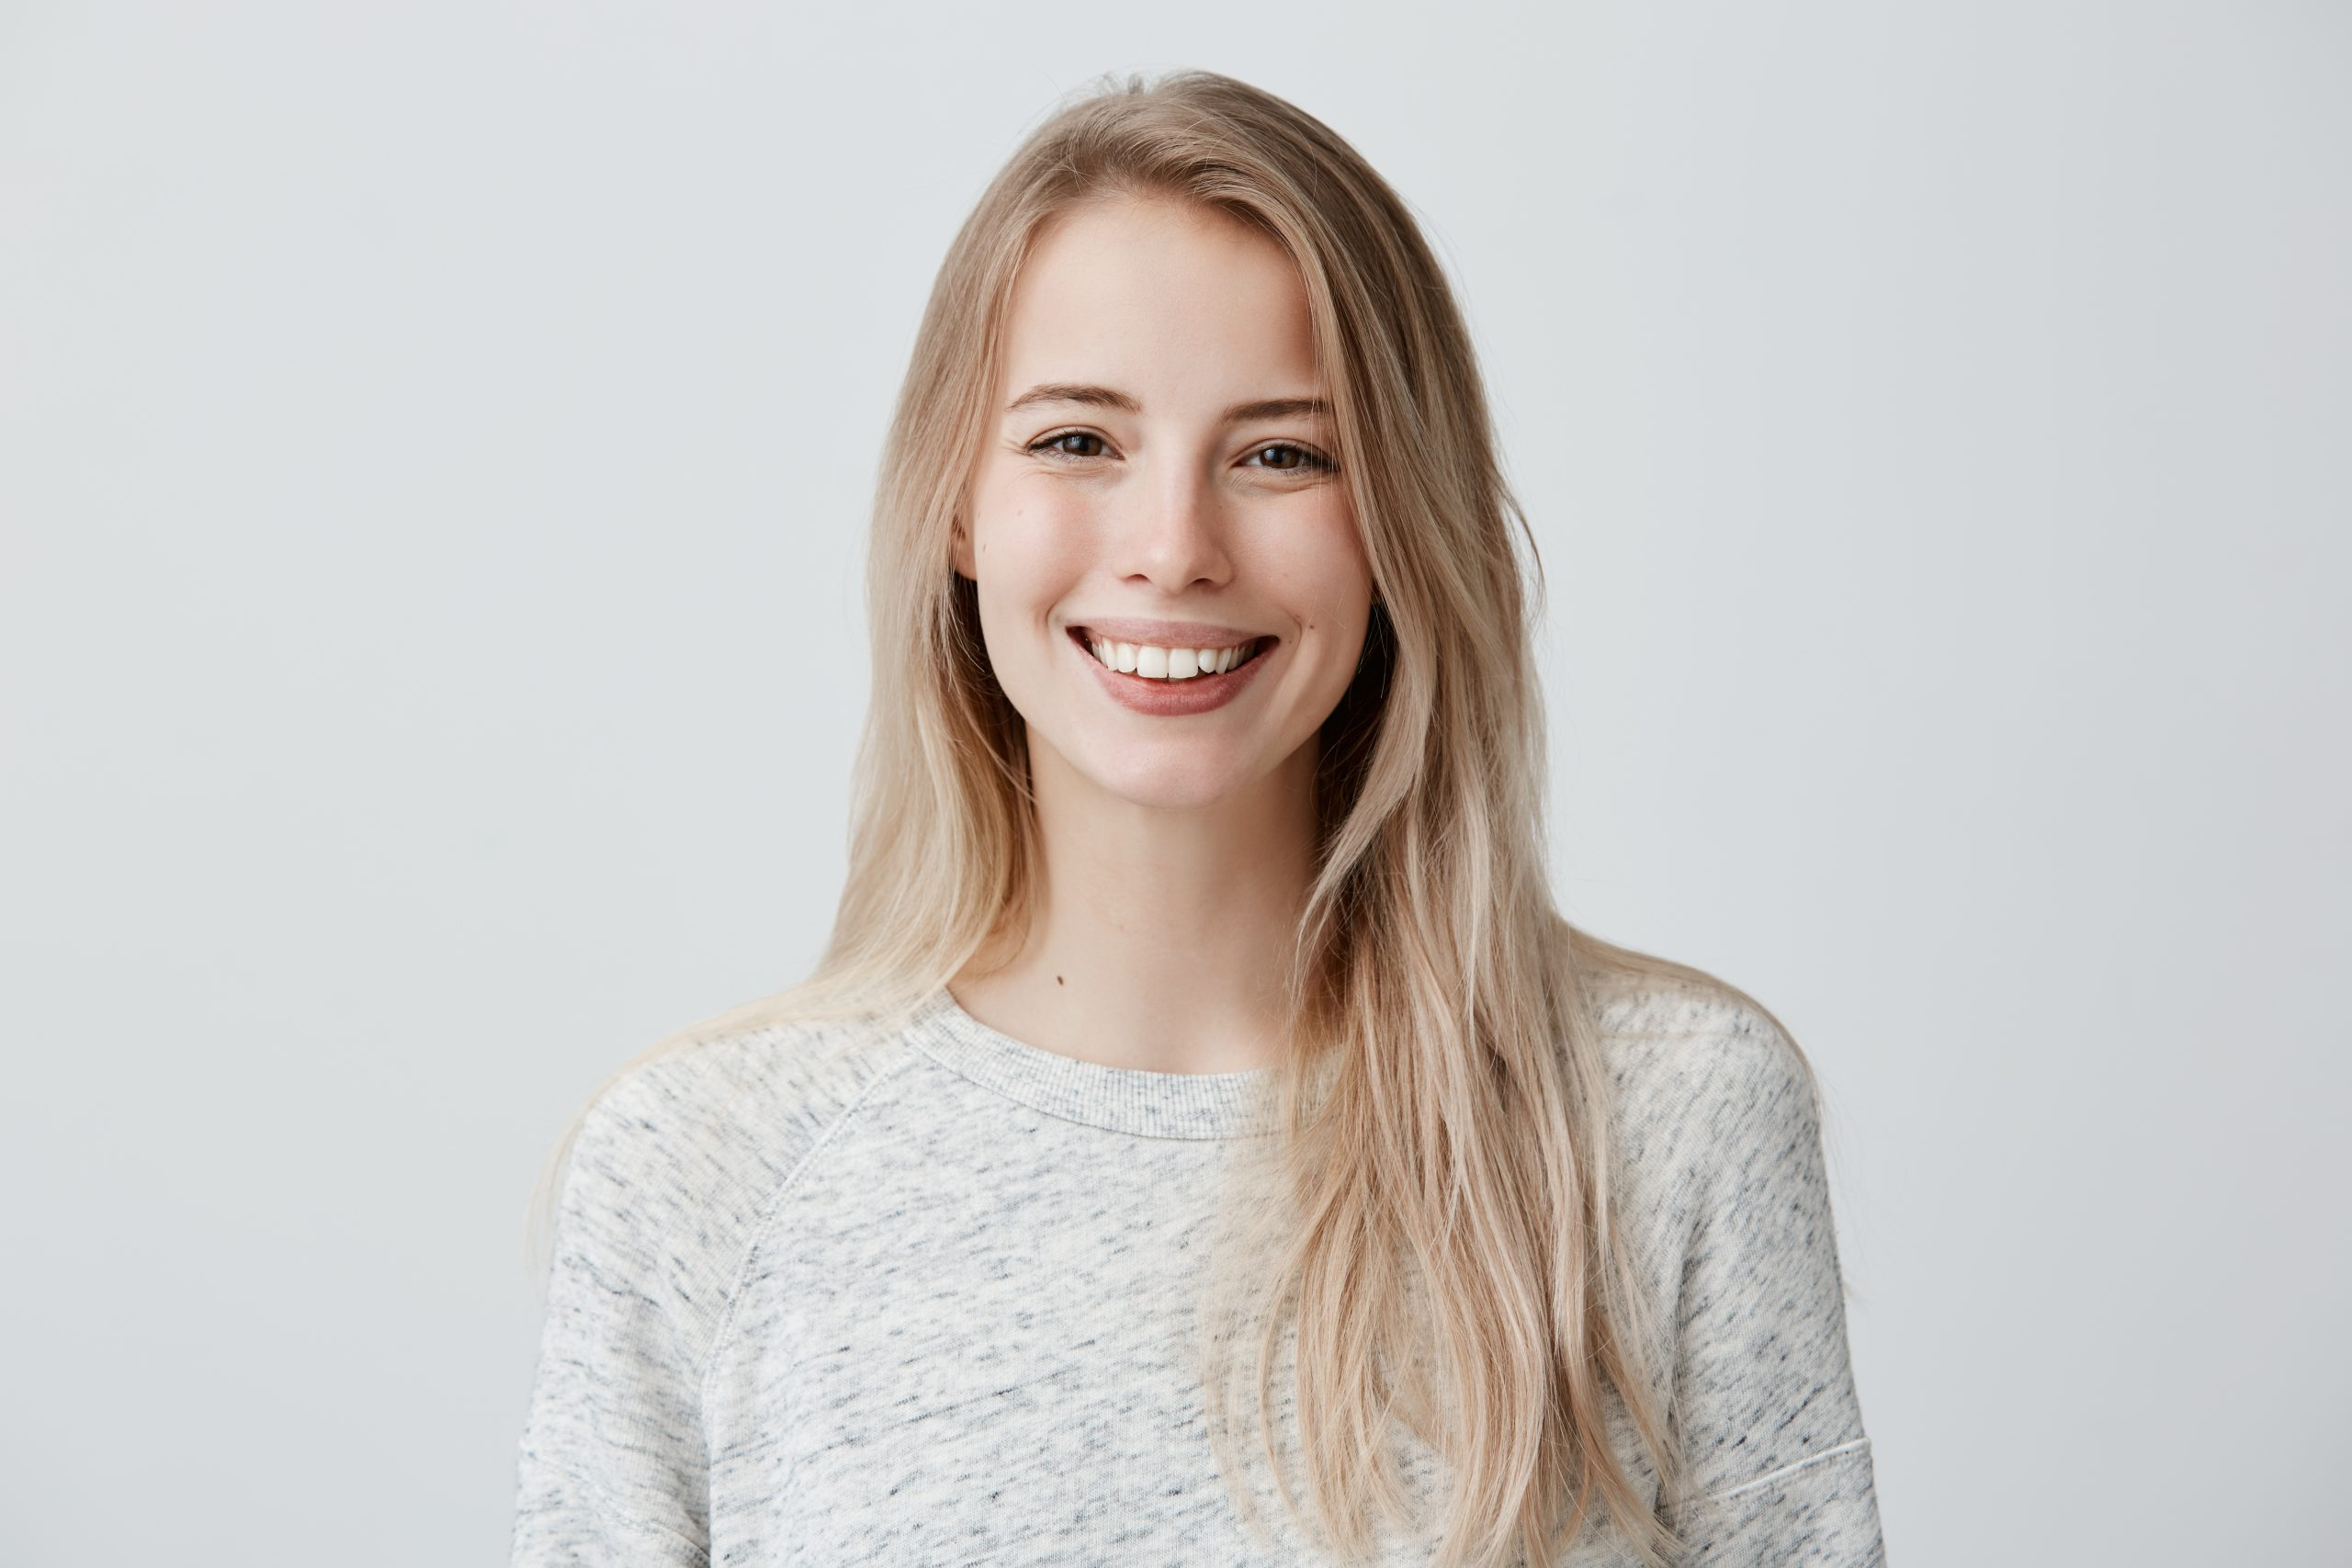 Human face expressions and emotions. Positive joyful young beautiful female with fair straight hair in casual clothing, laughing at joke, looking at camera and pleasantly smiling.